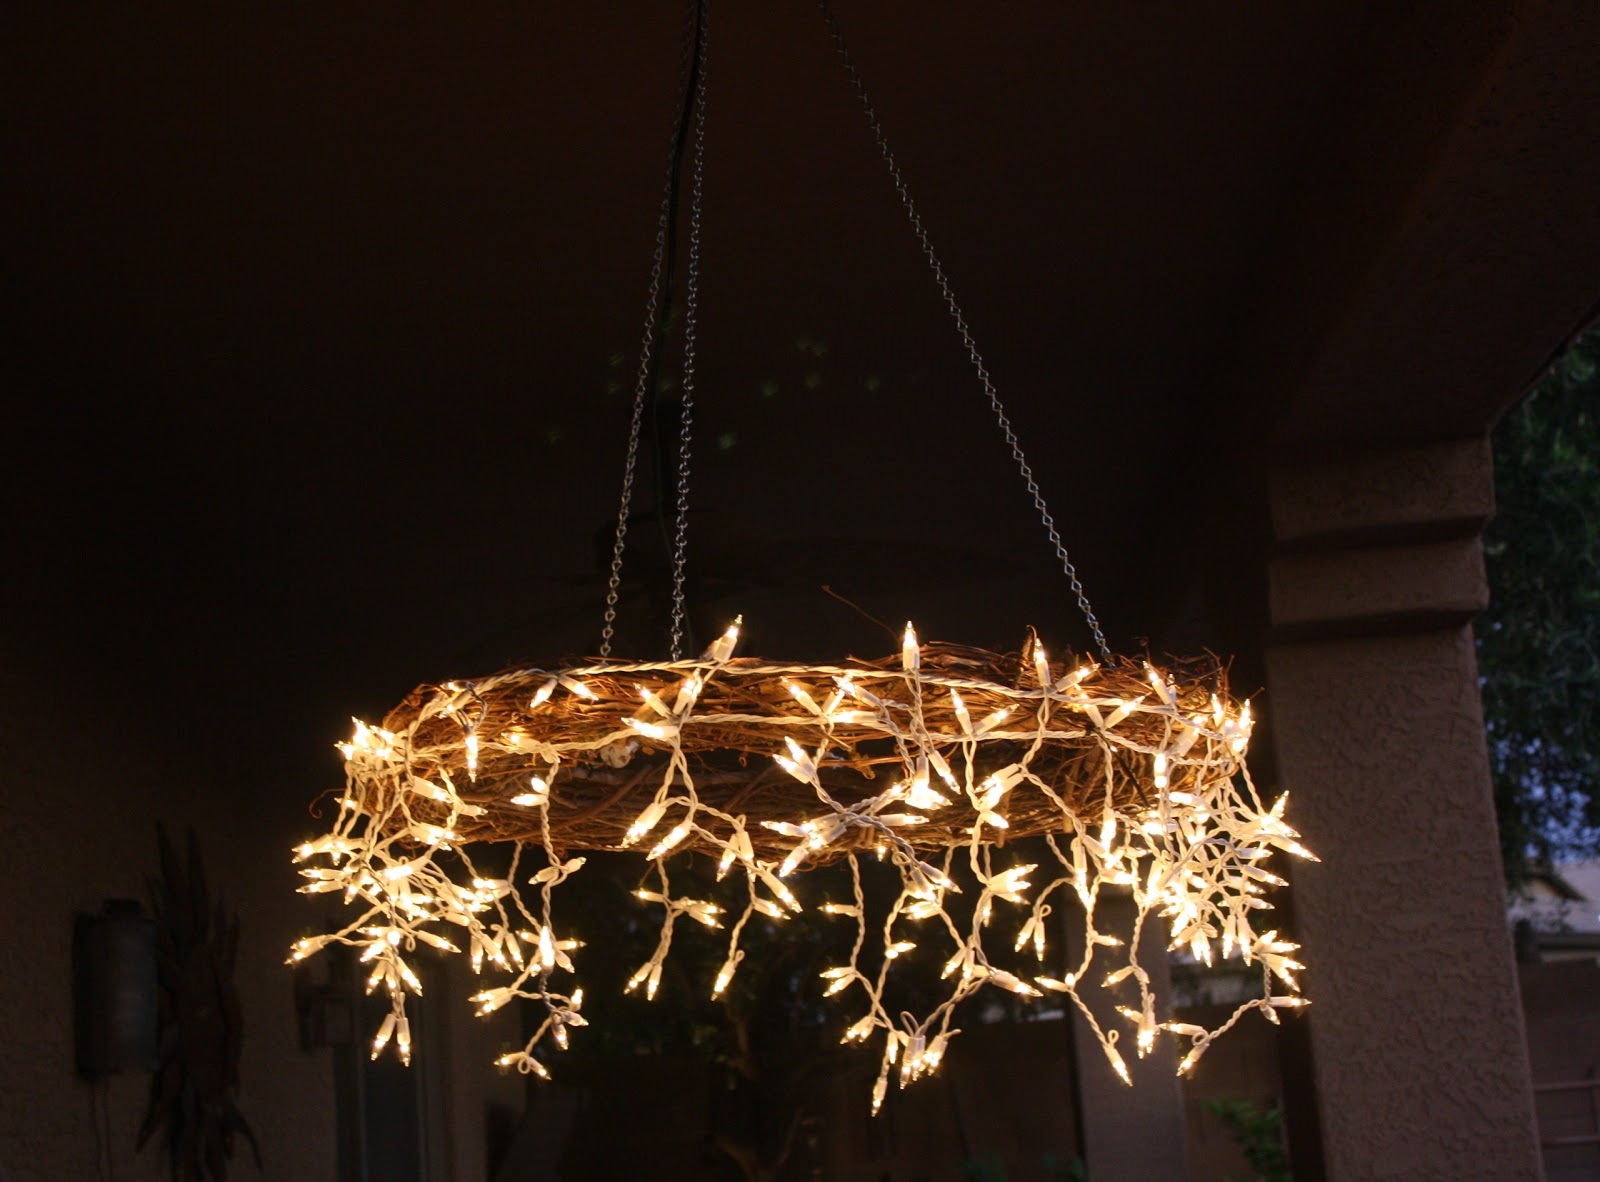 Diy Chandelier String Lights : The Project Table: DIY Icicle Chandelier